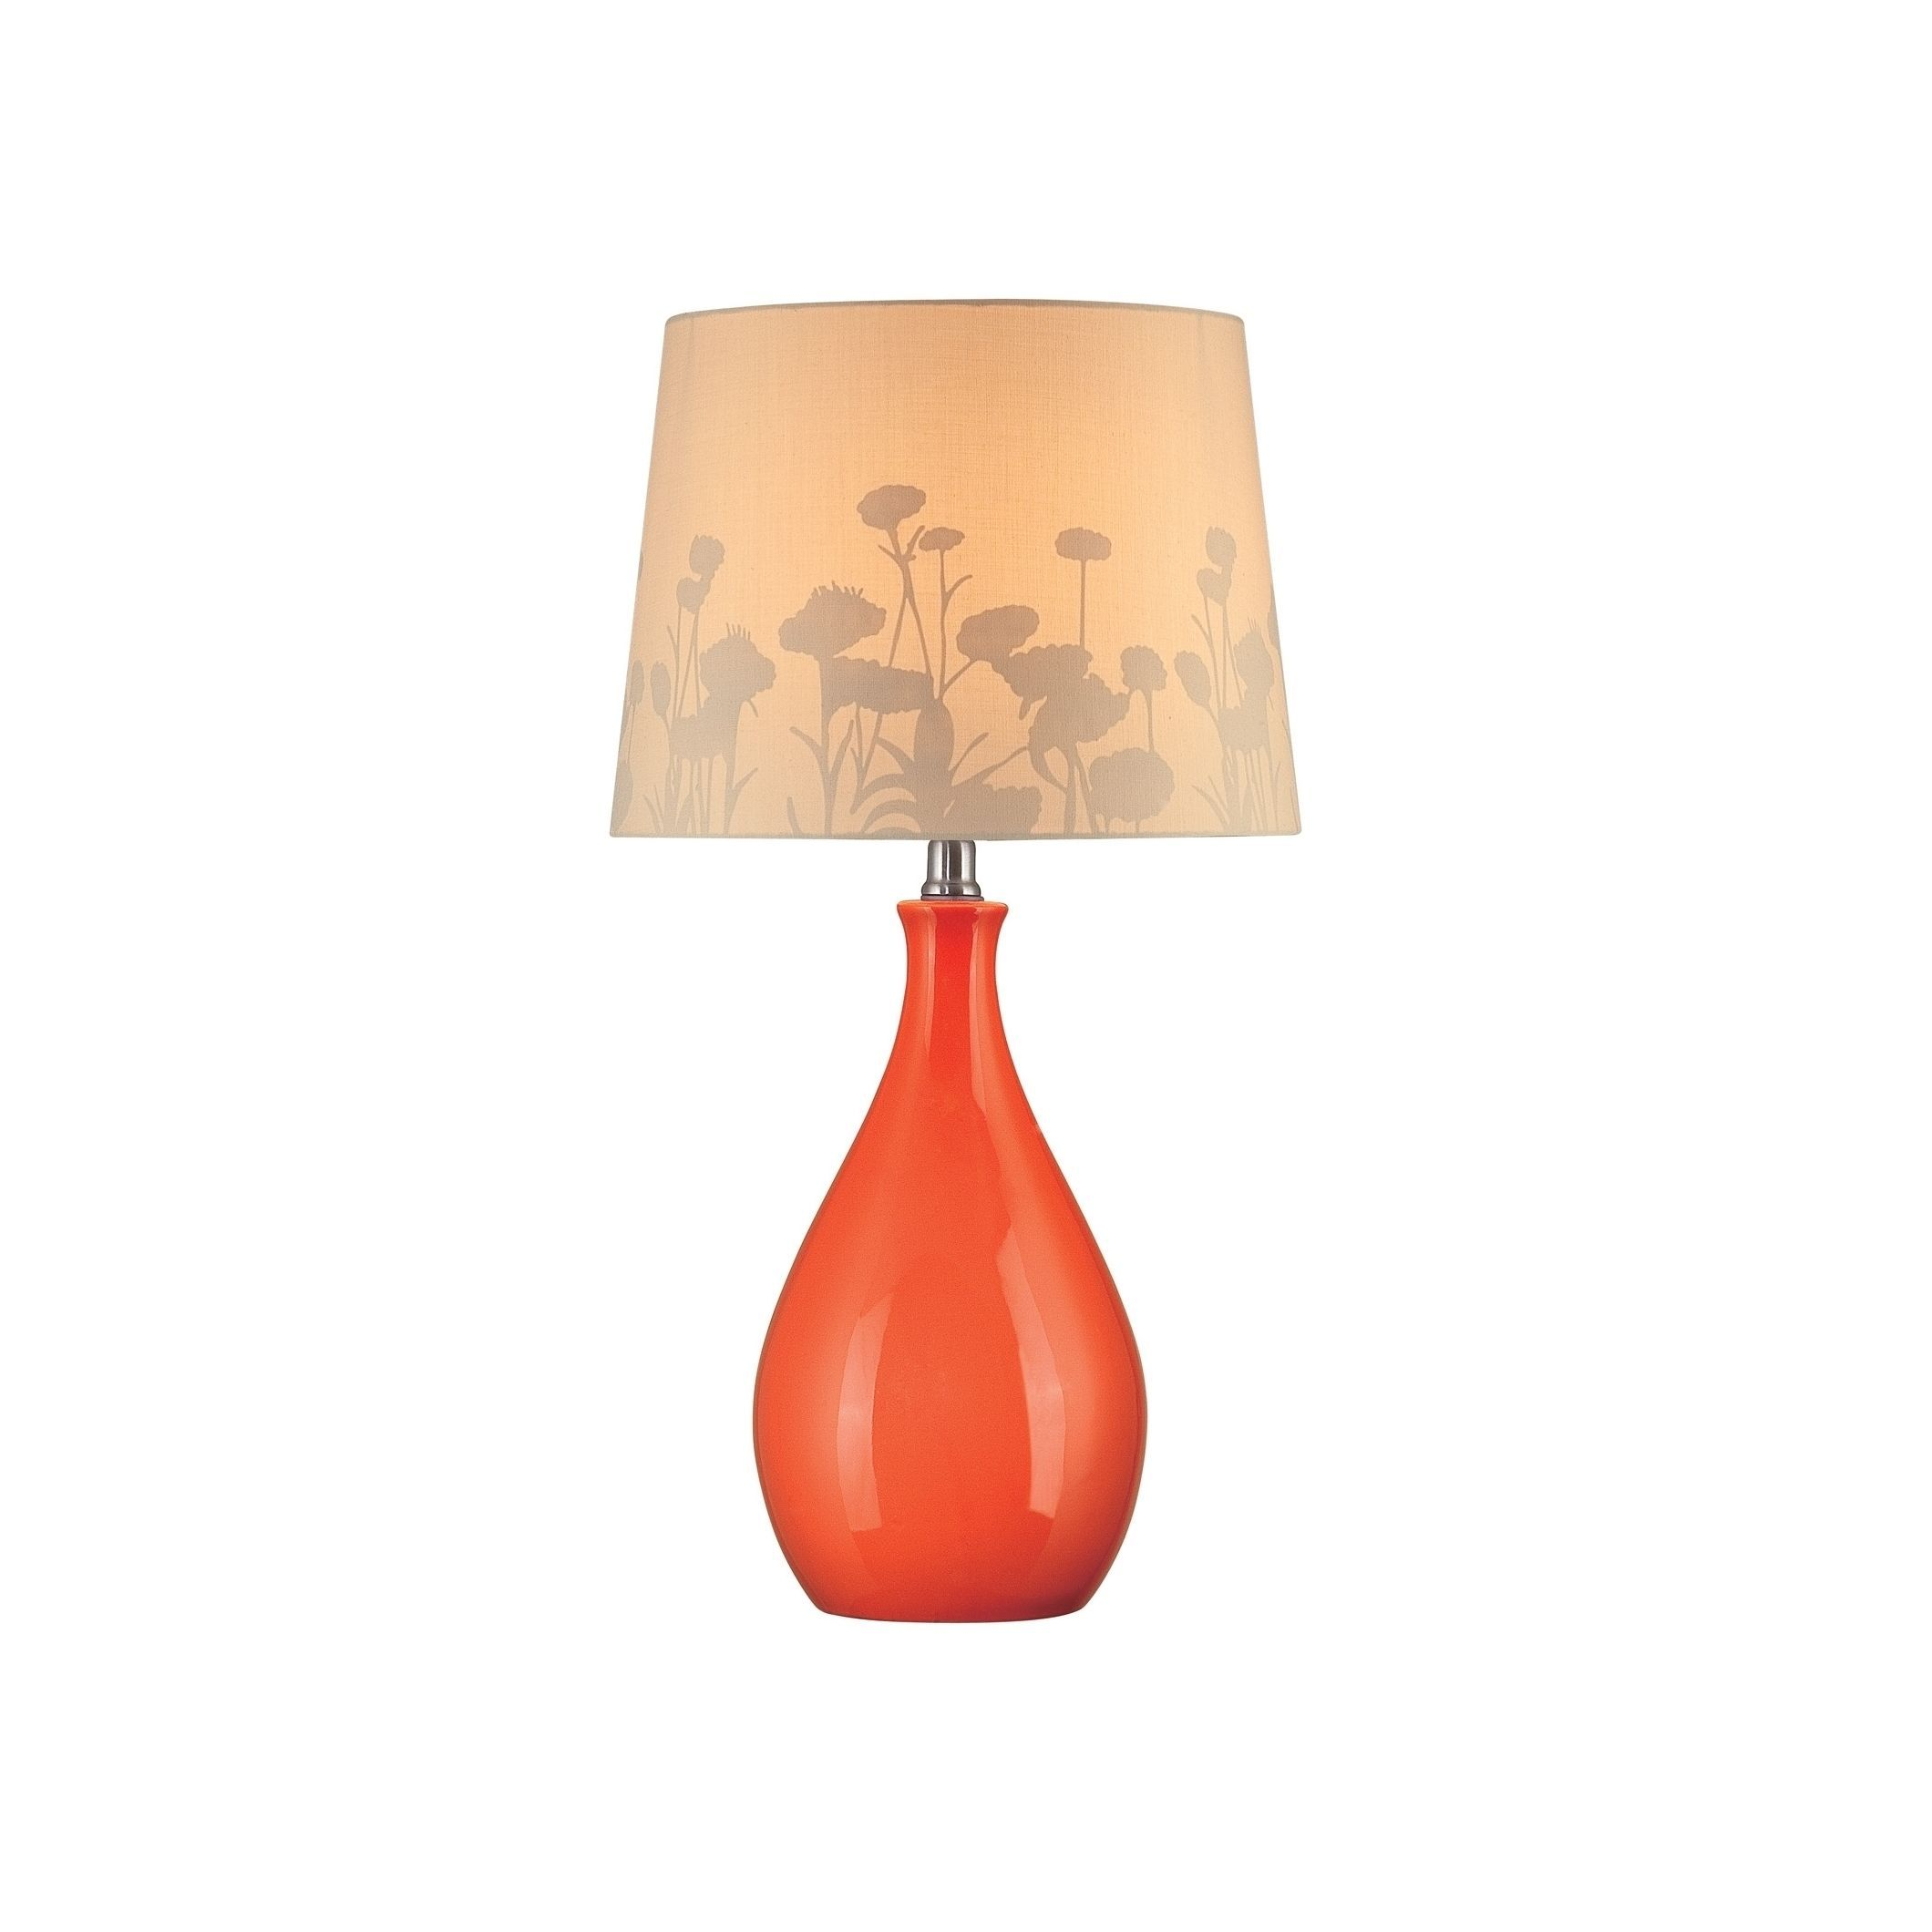 2120x2120 Lite Source Edaline 1 Light Orange Table Lamp (Orange, Beige